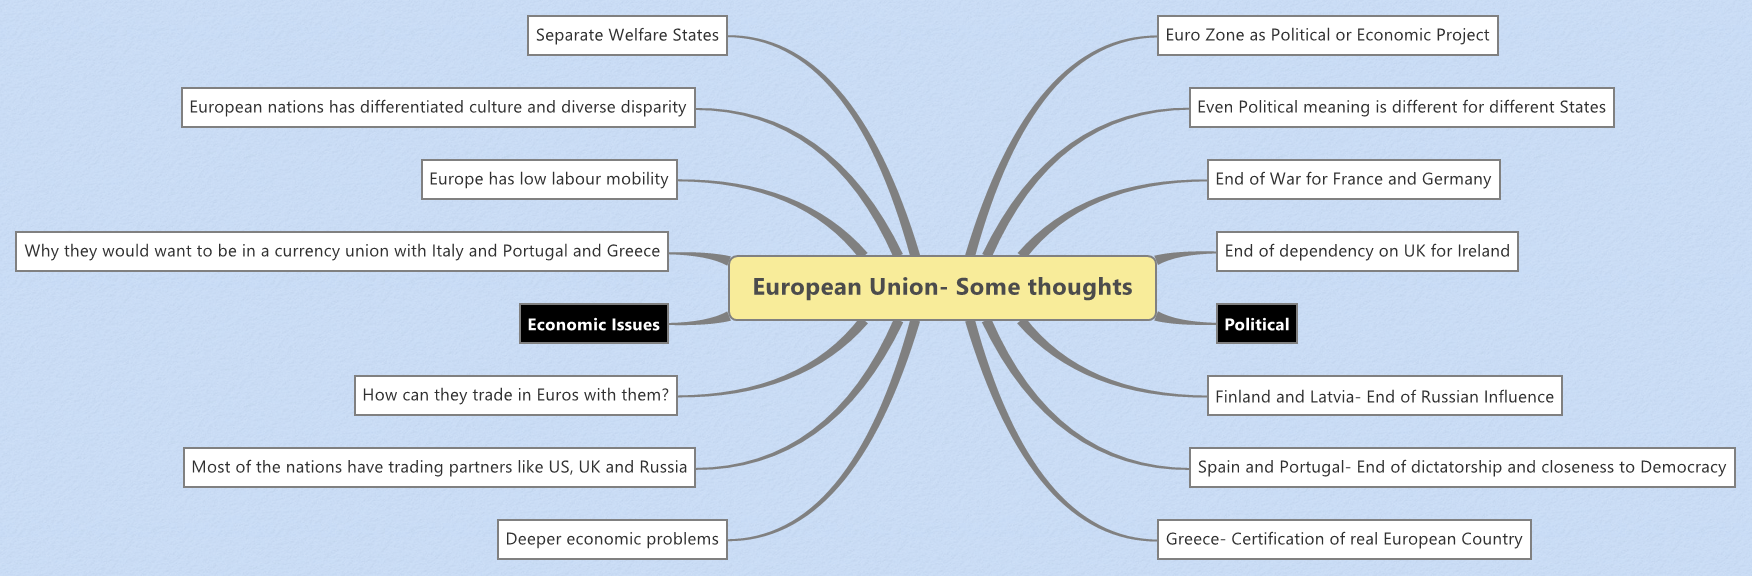 European Union- Some thoughts